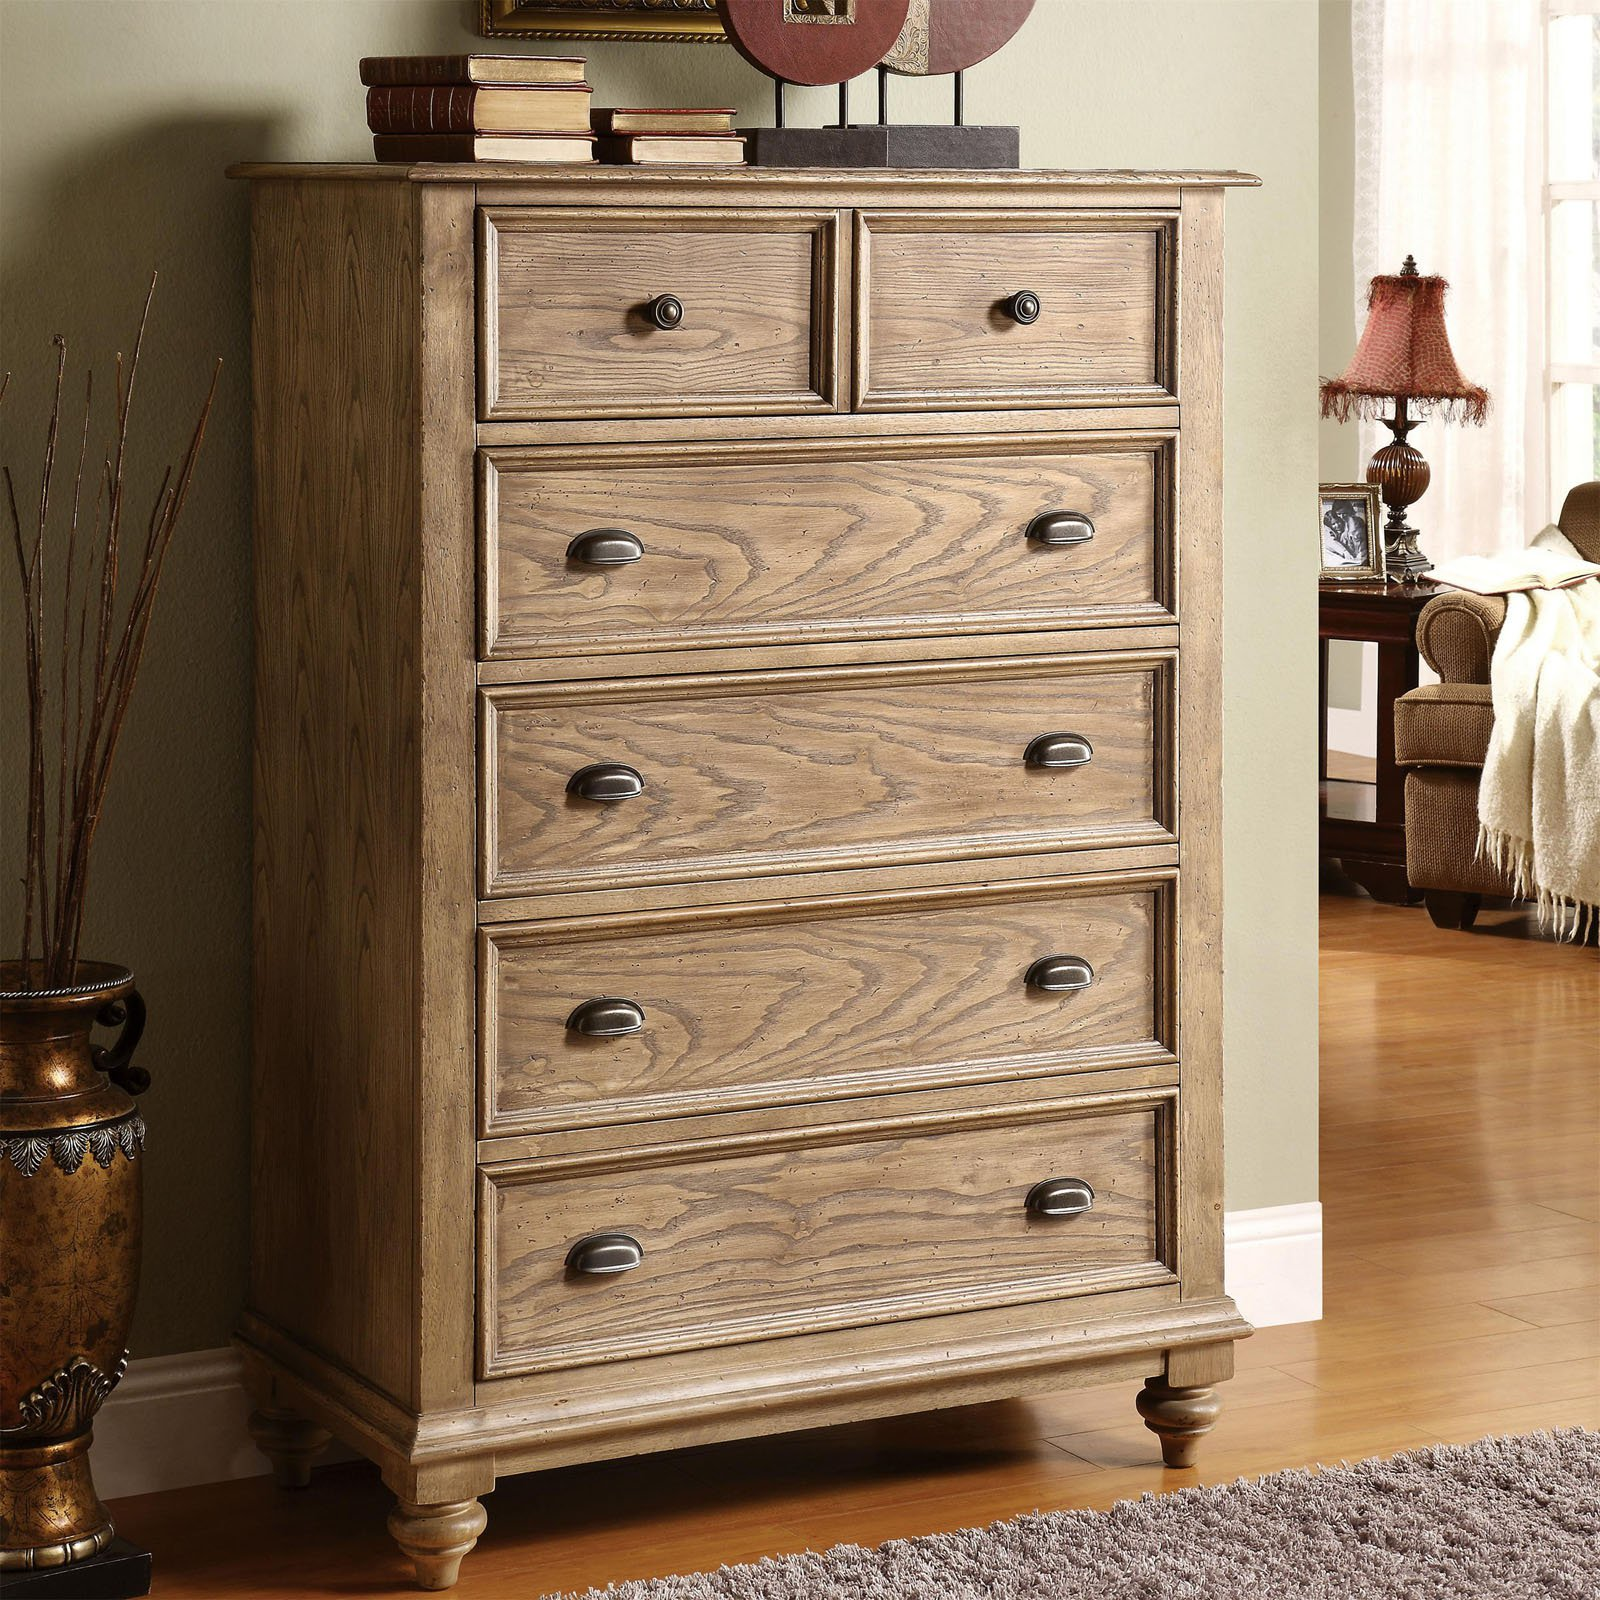 riverside coventry 5 drawer dresser - weathered driftwood | hayneedle EHDZBTE